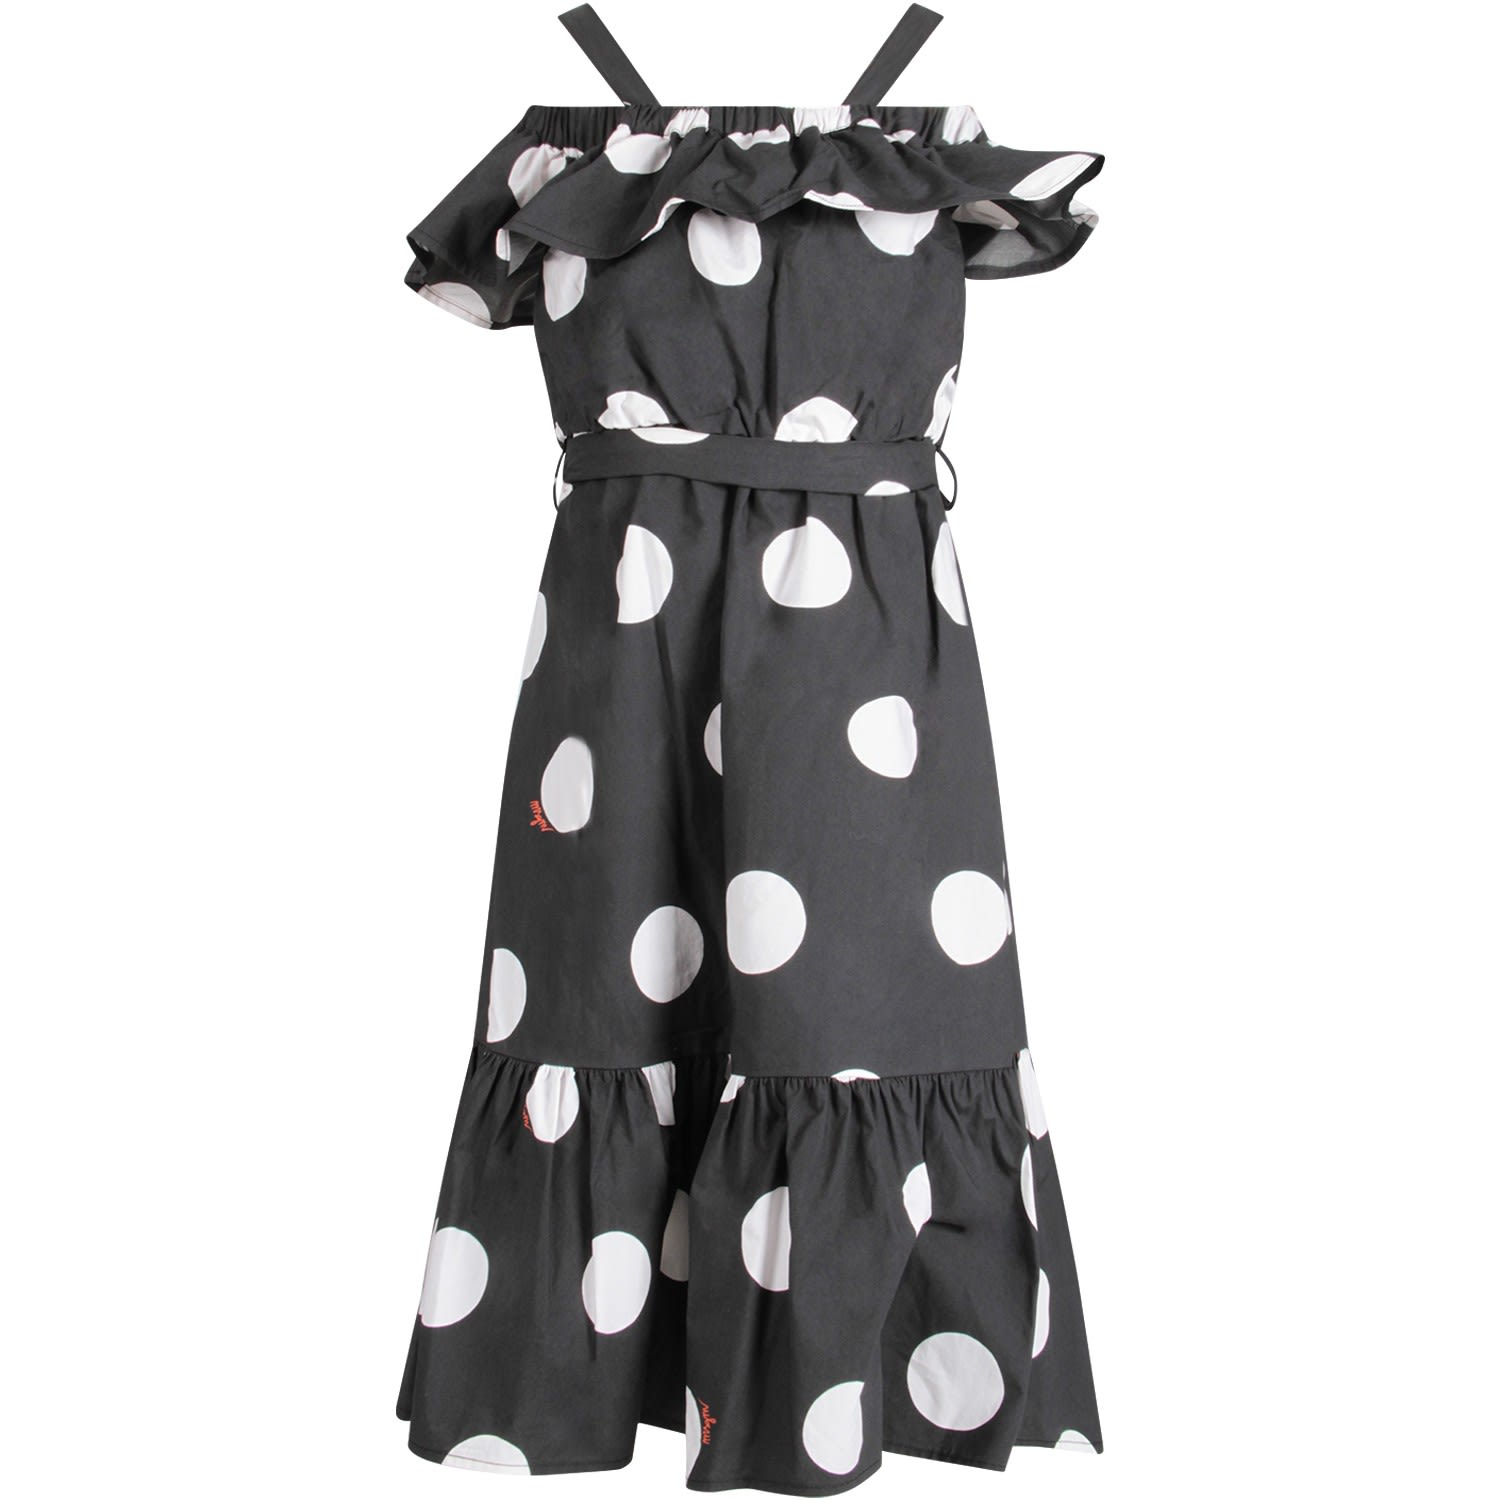 Buy MSGM Black Dress With Polka Dots For Girl online, shop MSGM with free shipping